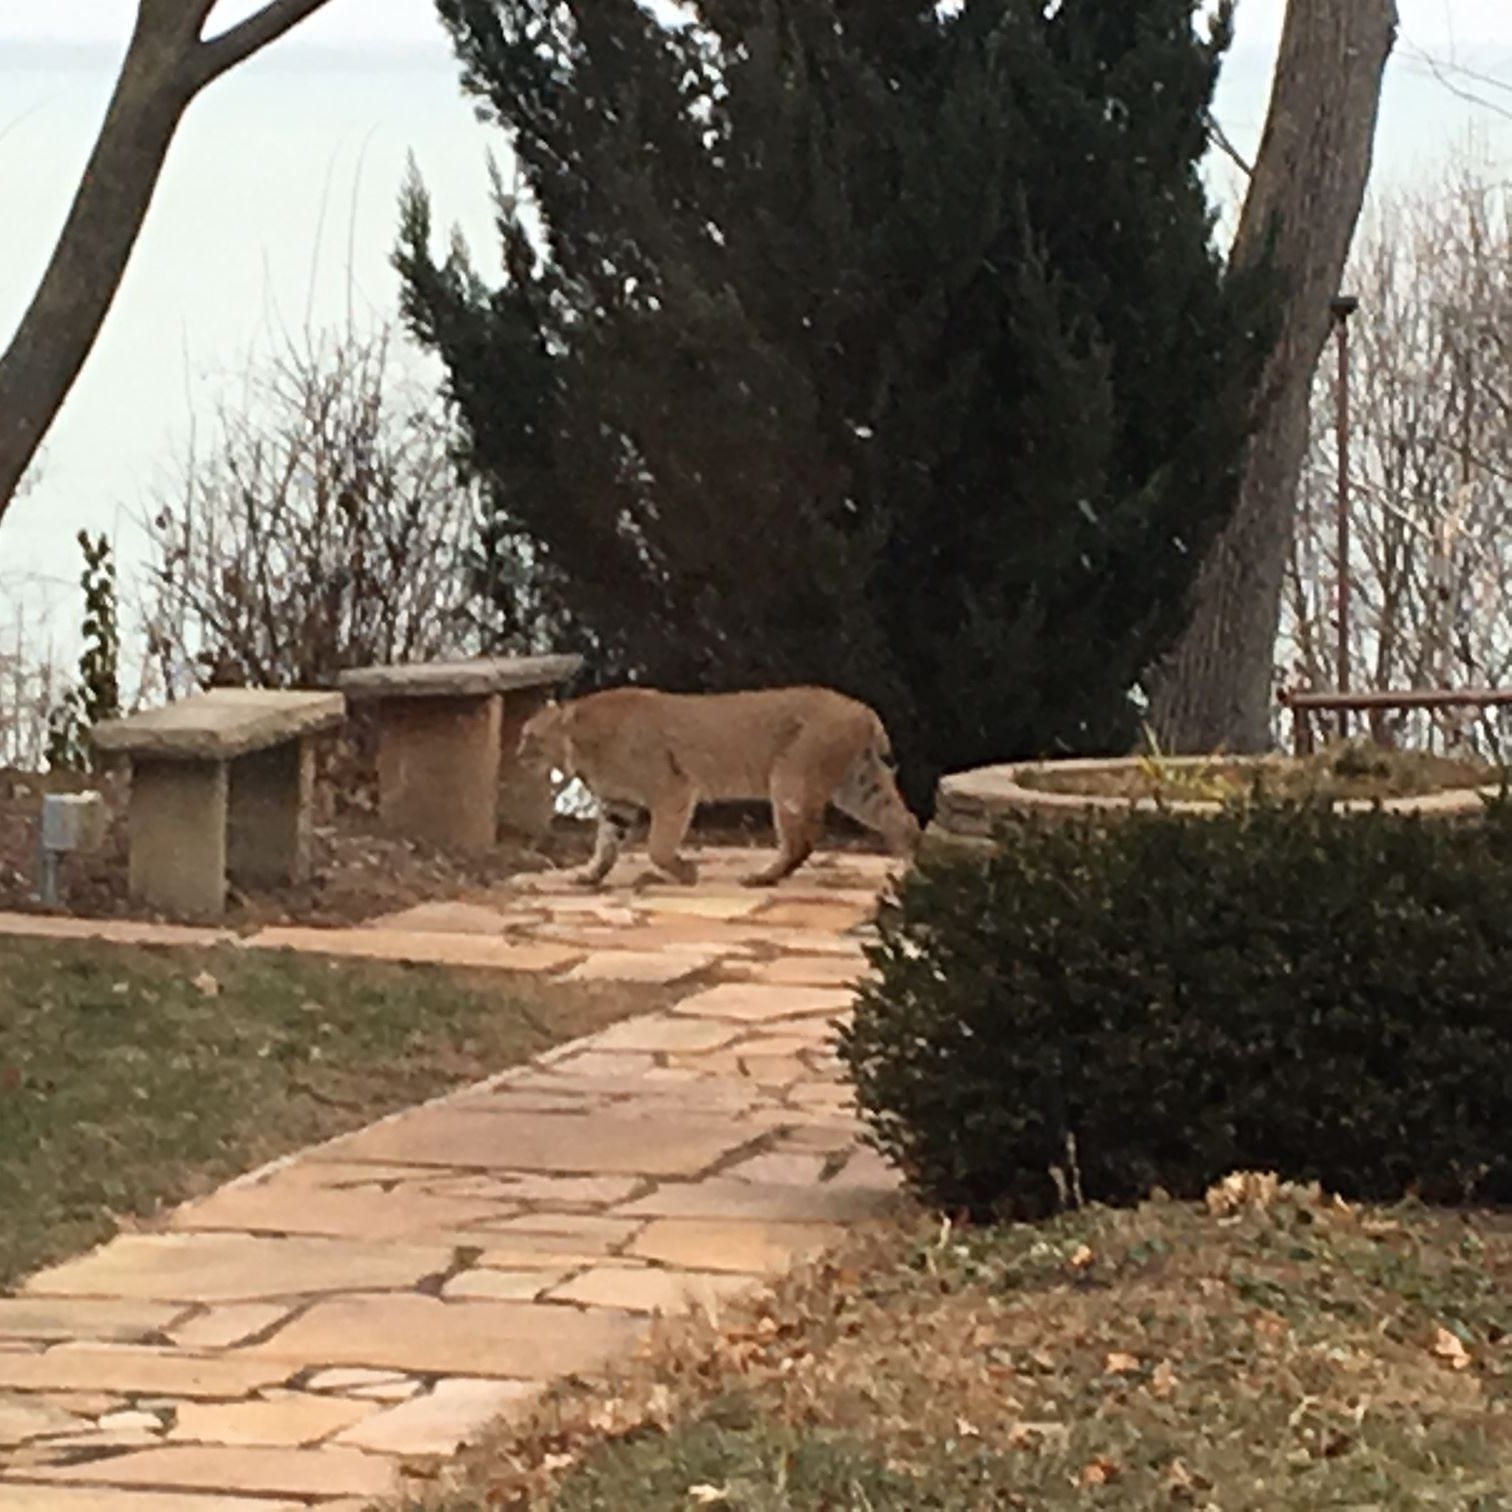 A bobcat was spotted in a Whitefish Bay backyard, DNR confirms